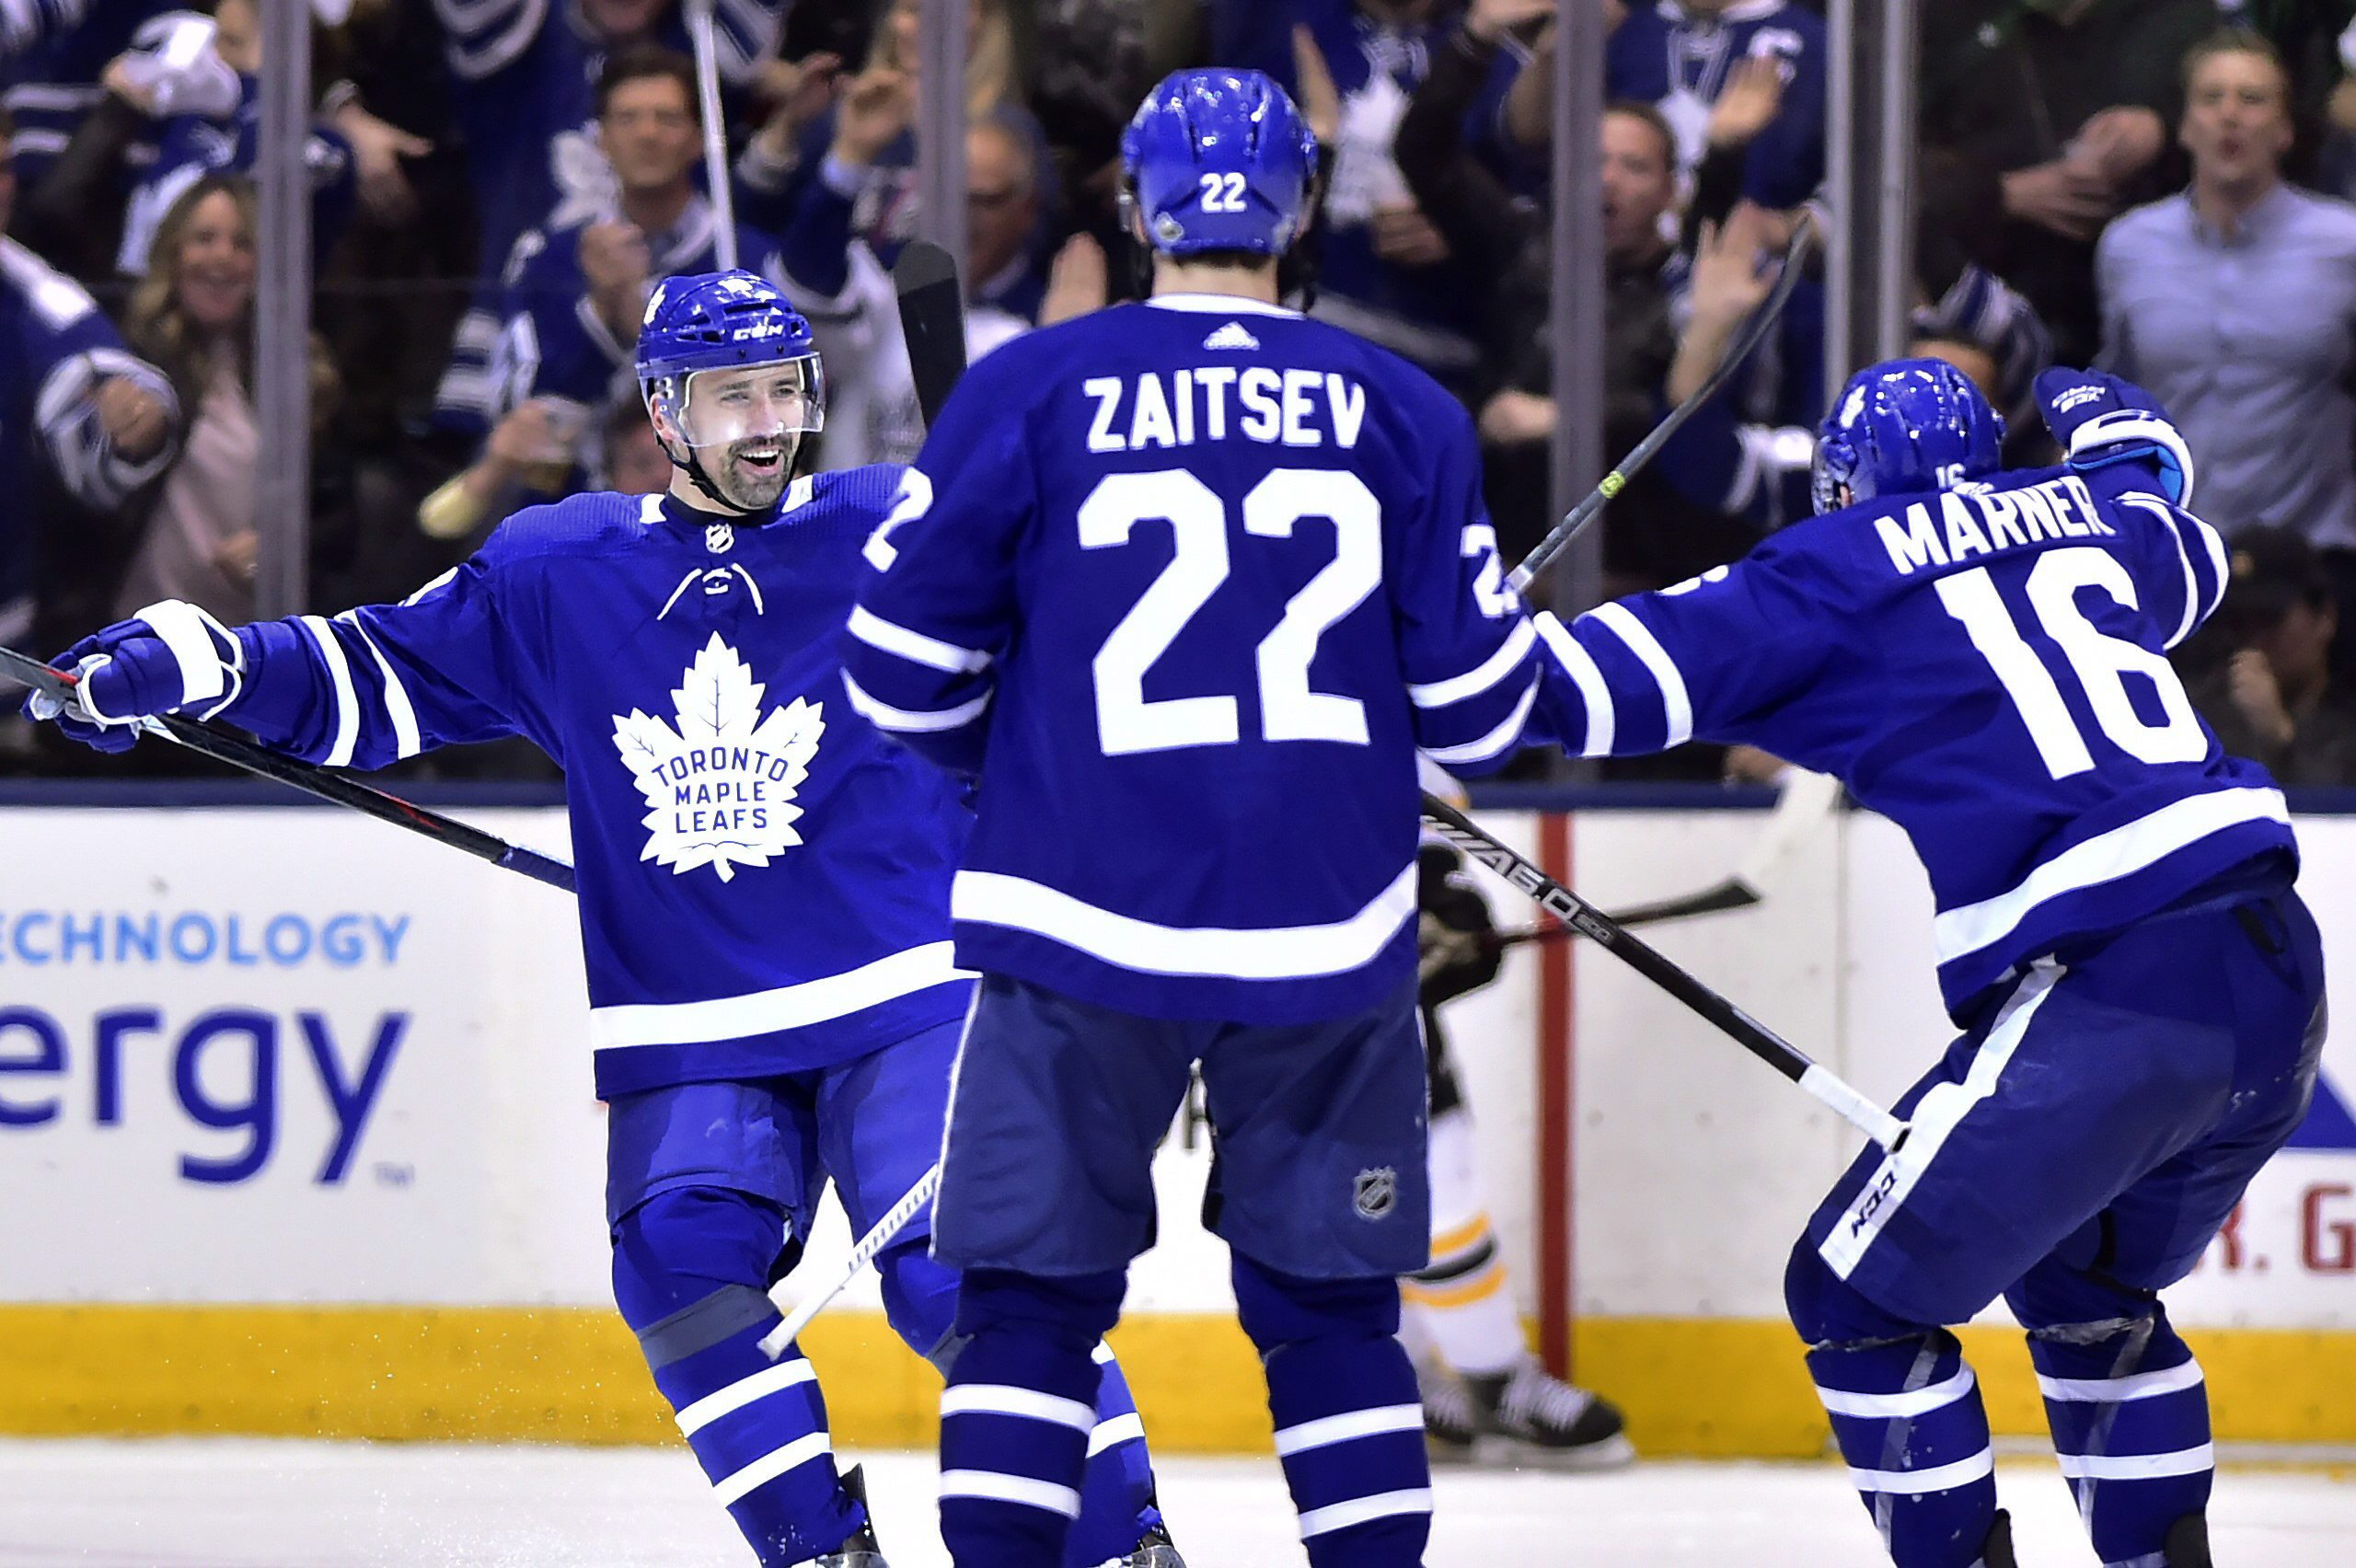 Andersen leads Maple Leafs in 3-1 win over Bruins to force Game 7